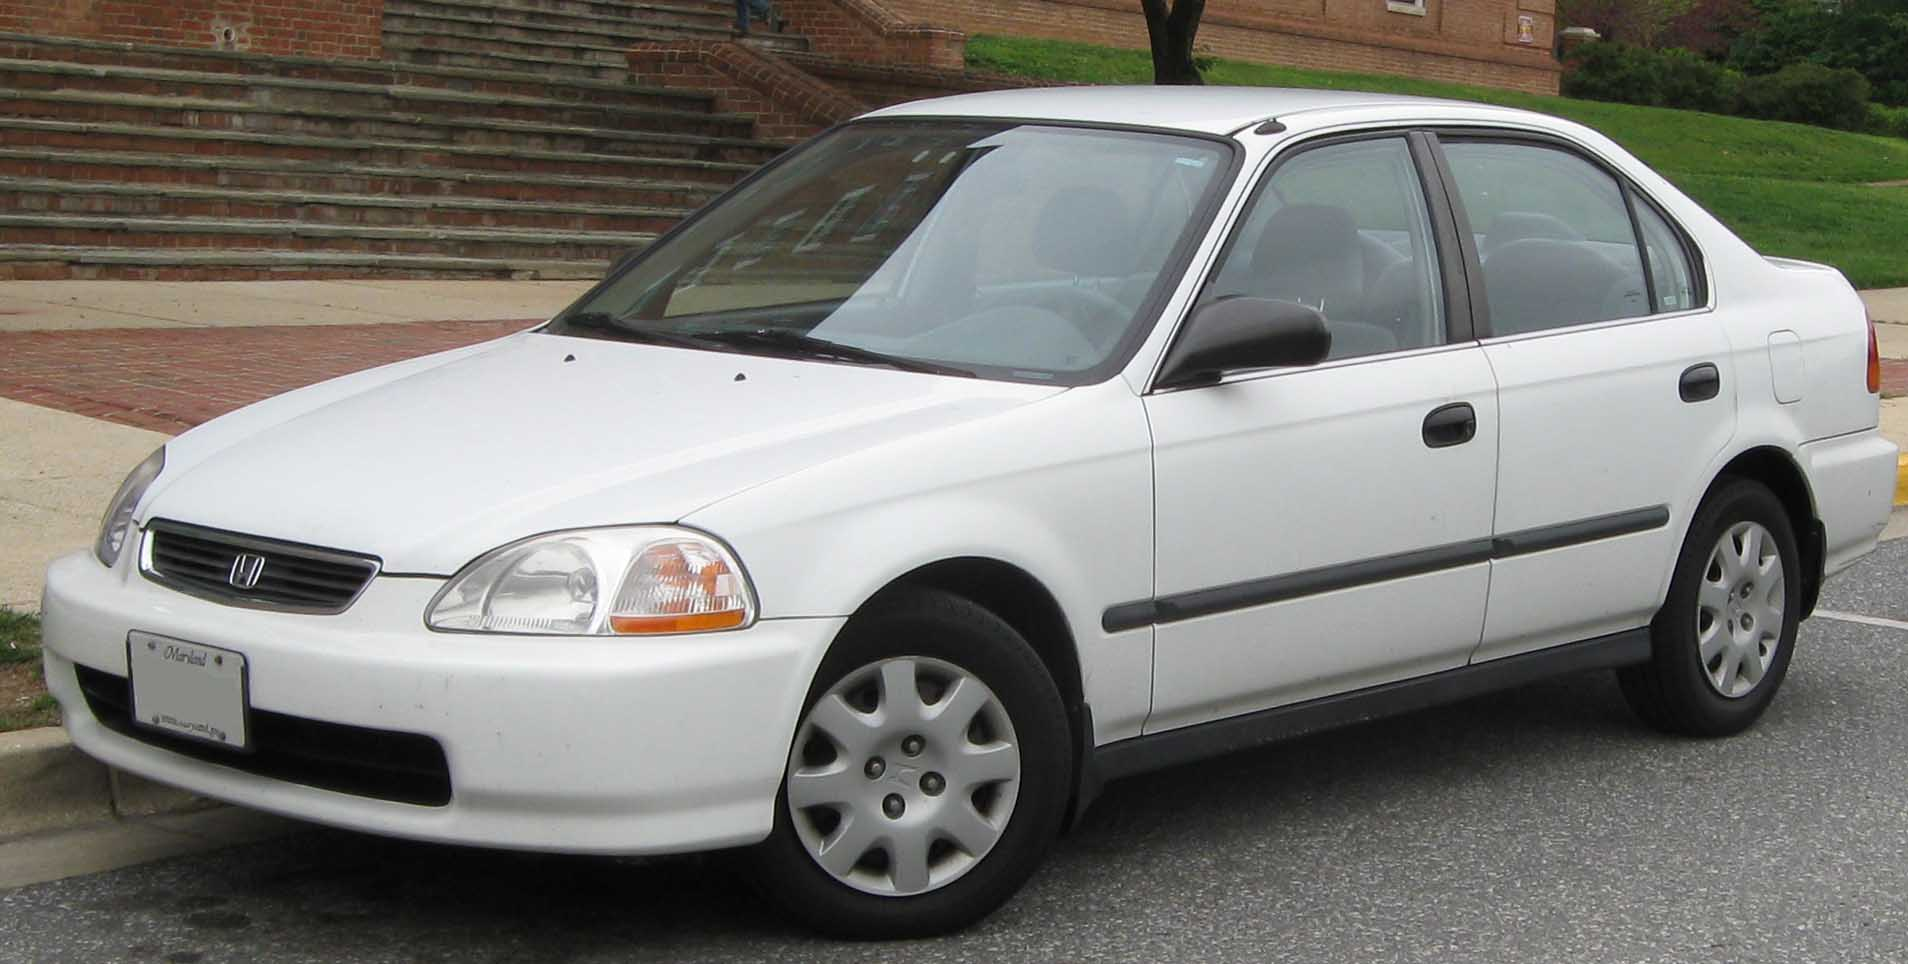 96-98_Honda_Civic_LX_sedan.jpg